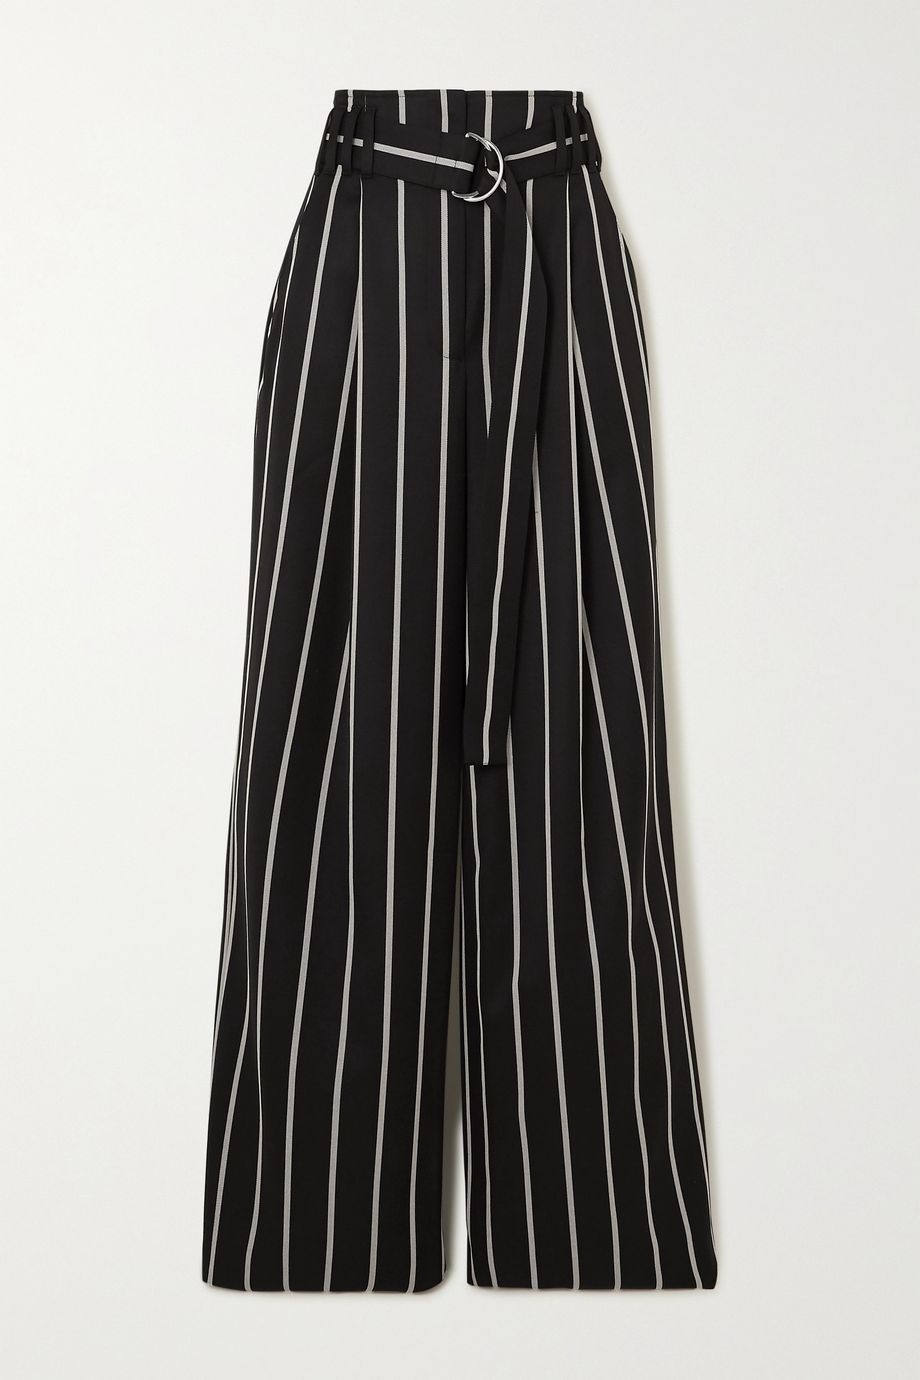 Proenza Schouler Belted striped wool-twill wide-leg pants